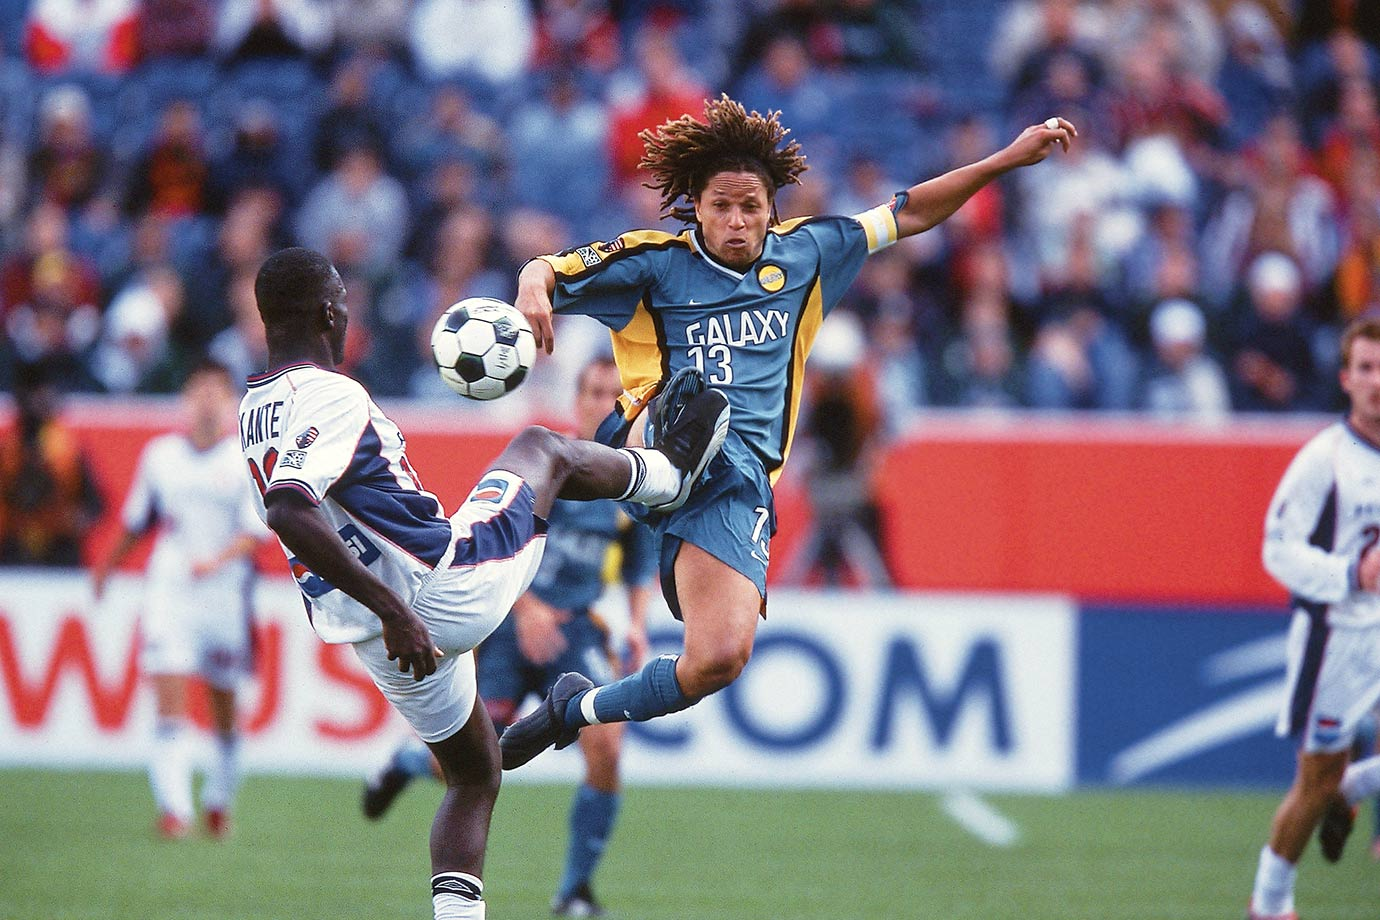 2002 — LA Galaxy (beat New England Revolution 1-0 in extra time)